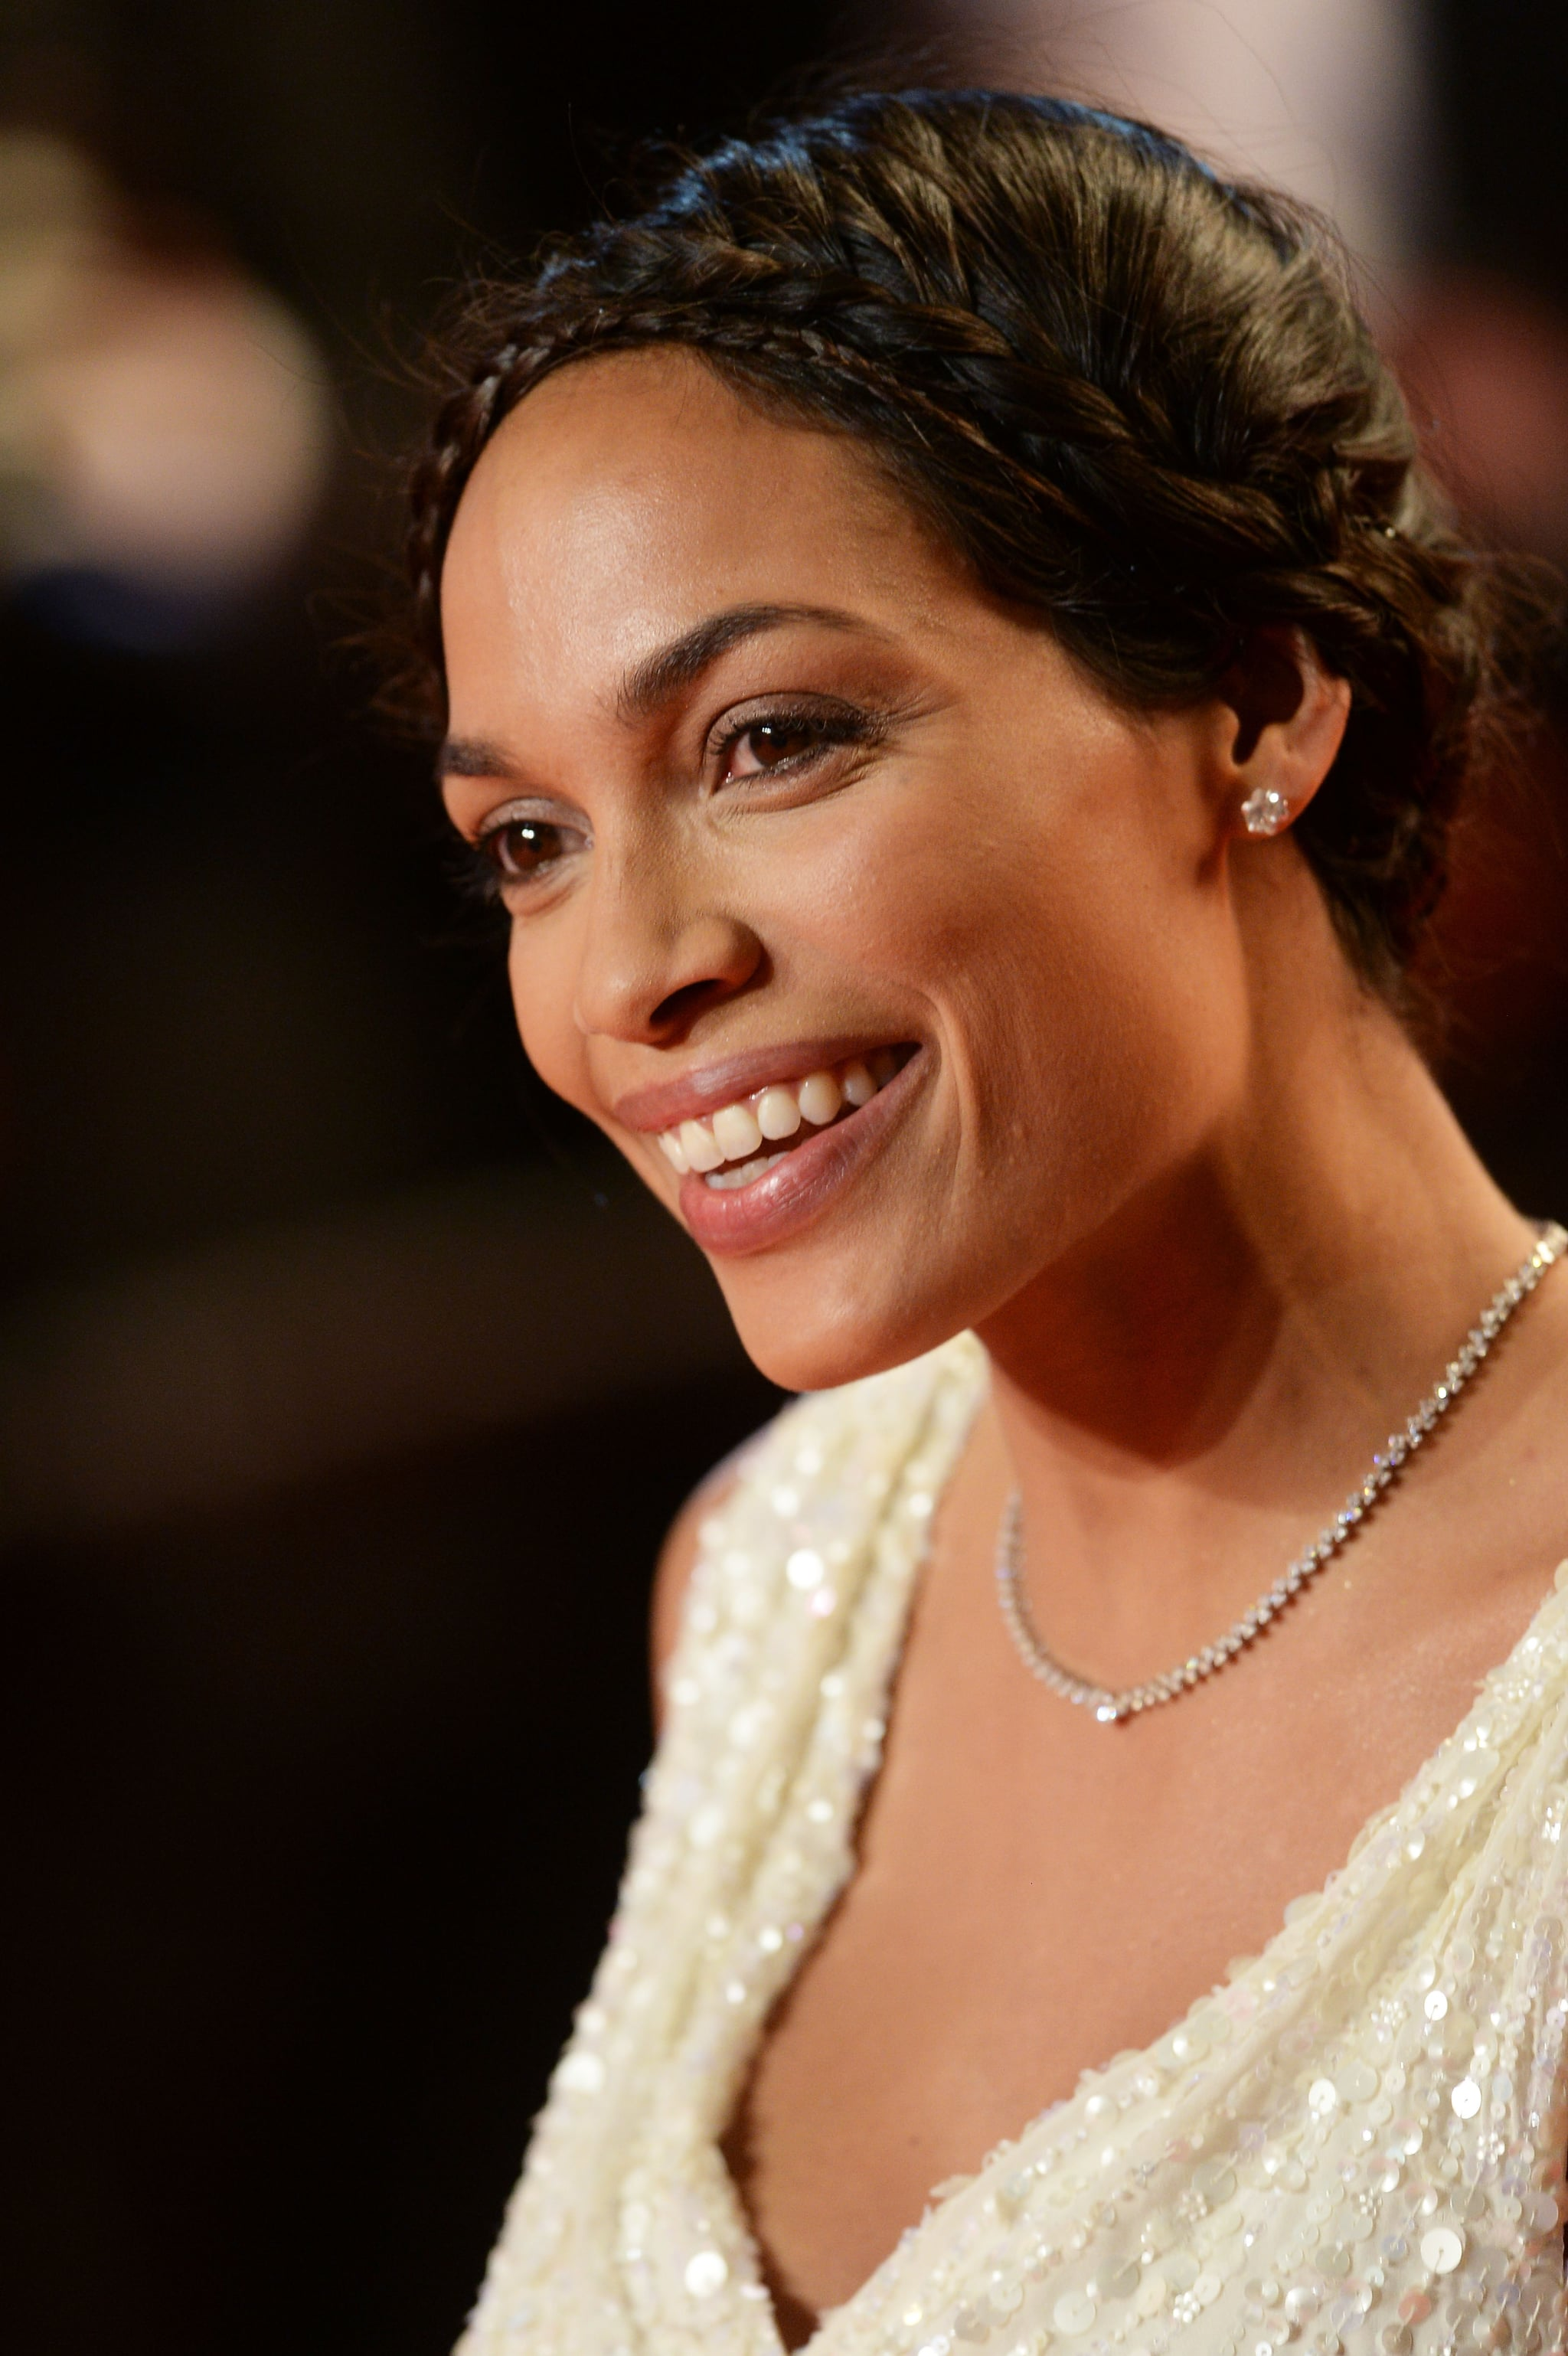 For her turn on the red carpet at the premiere of As I Lay Dying, Rosario Dawson stunned in glowing makeup and a delicate crown of braids.